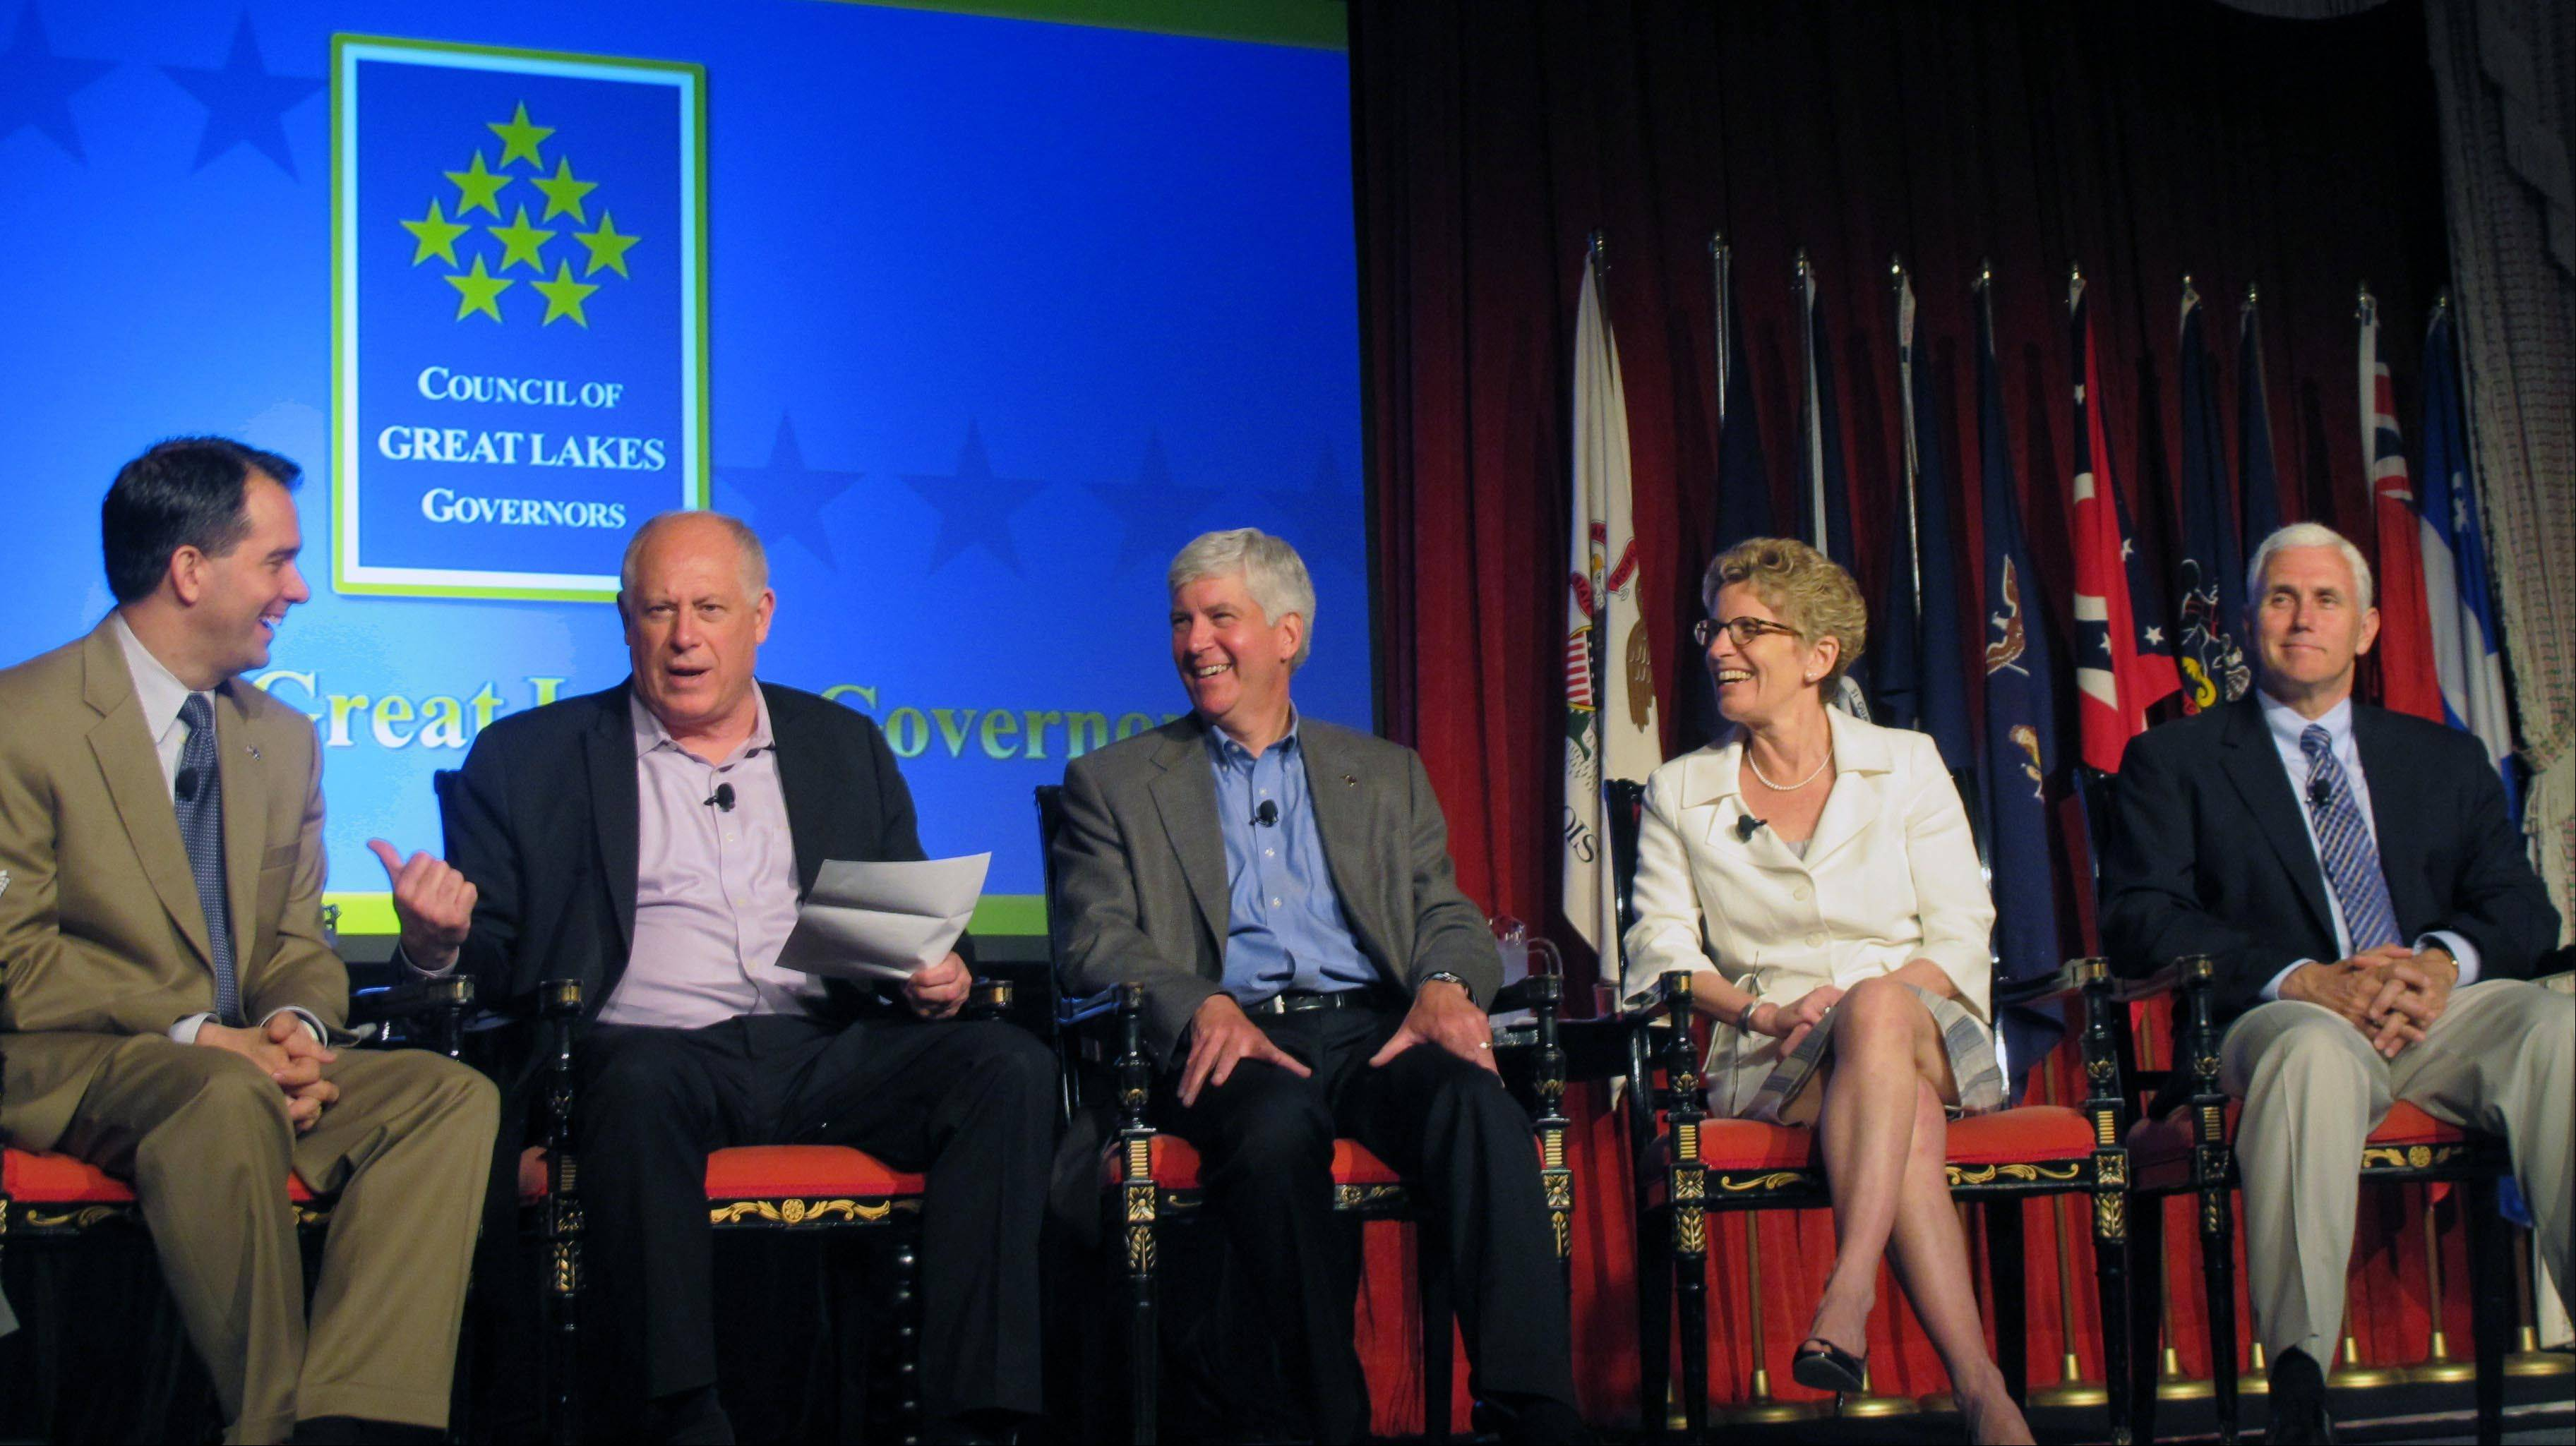 Members of the Council of Great Lakes Governors discuss regional policies on trade and water quality Saturday on Mackinac Island, Mich.. From left: Wisconsin Gov. Scott Walker, Illinois Gov. Pat Quinn, Michigan Gov. Rick Snyder, Ontario Premier Kathleen Wynne, and Indiana Gov. Mike Pence.